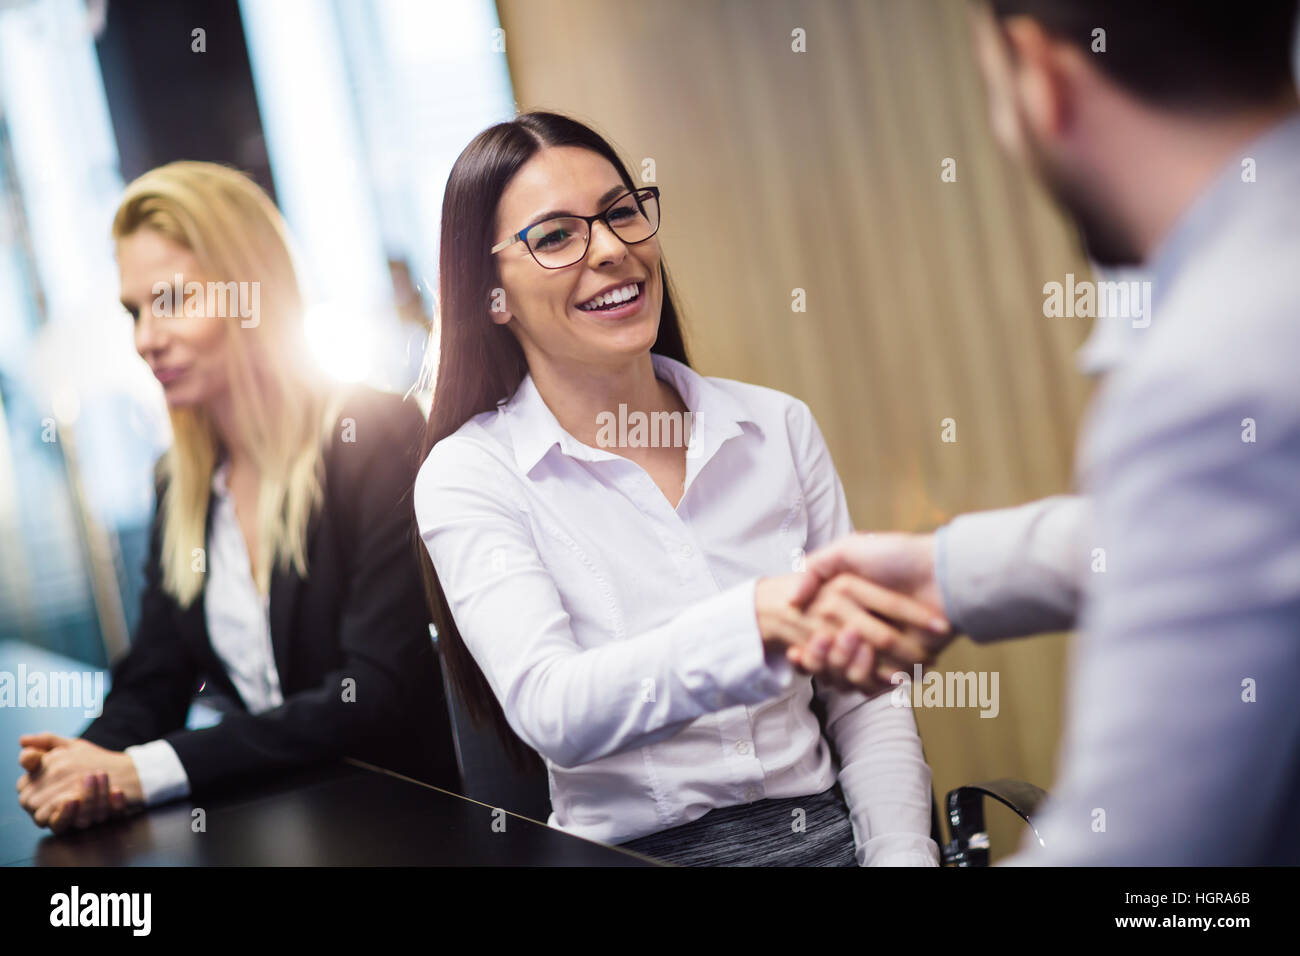 Business people agreement during board meeting in office - Stock Image